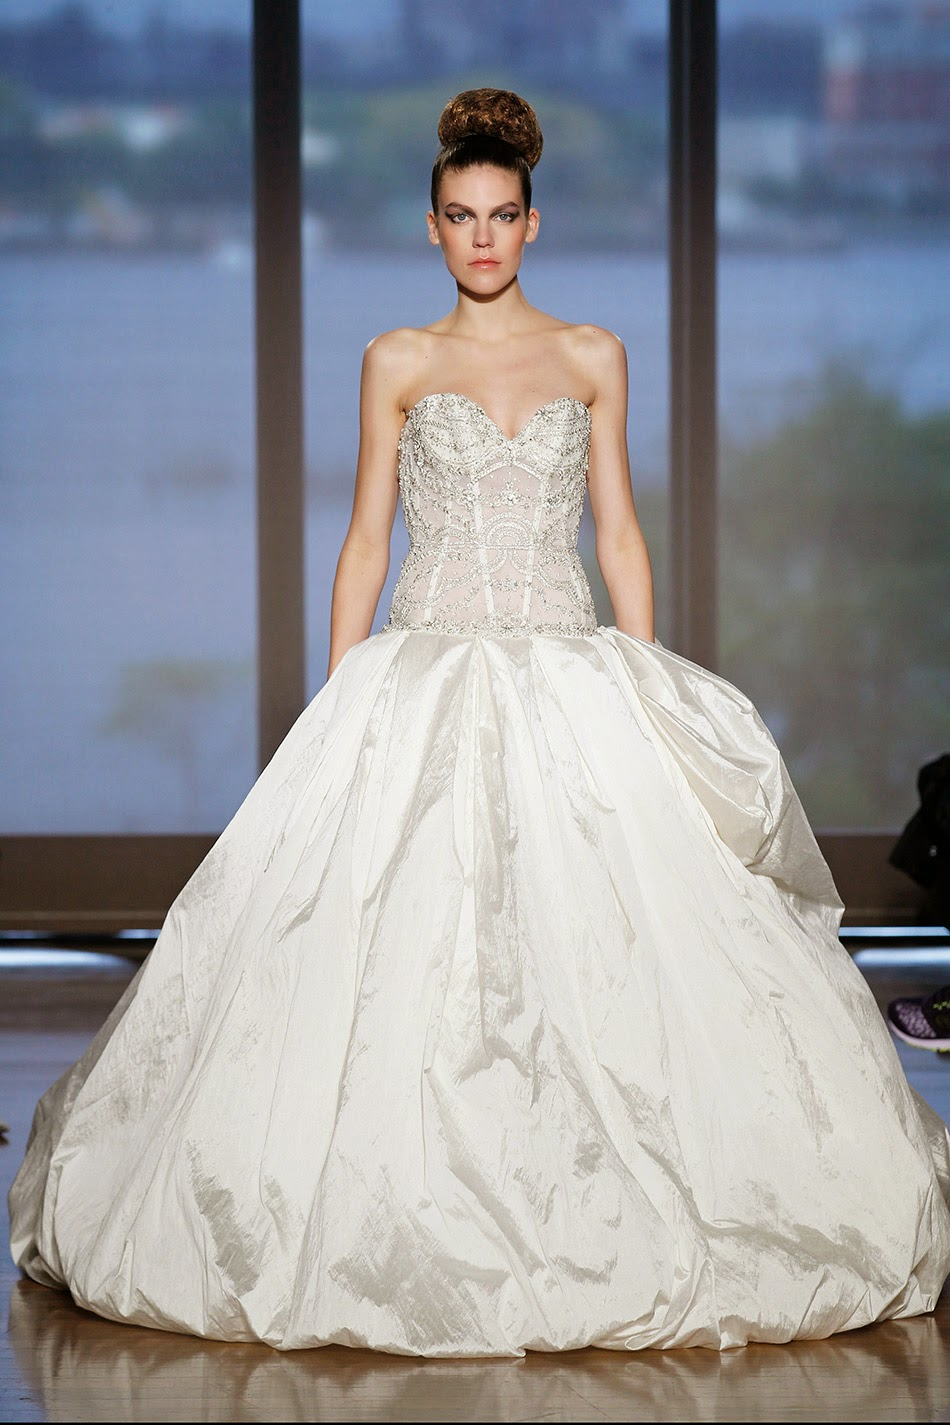 Princess Wedding Dresses: Couture Fall/Winter 2014 Ines di Santo